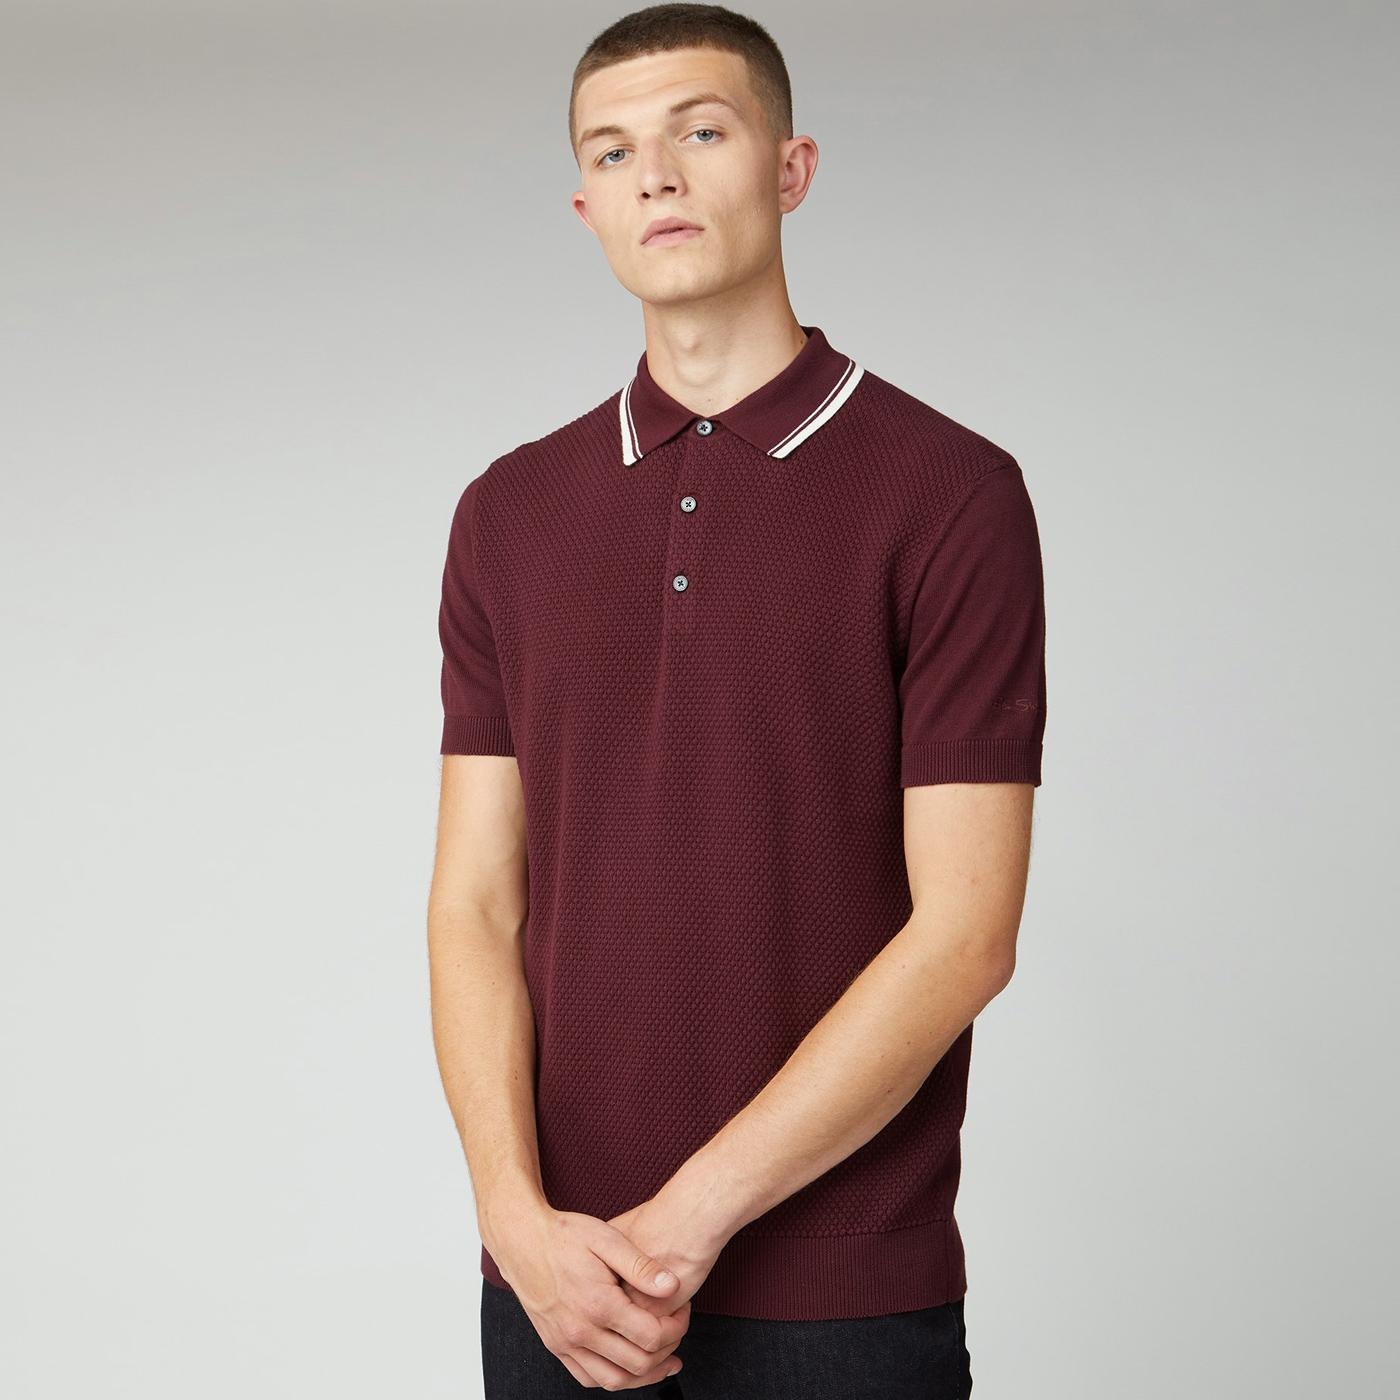 BEN SHERMAN Mod Waffle Textured Knit Polo Top PORT